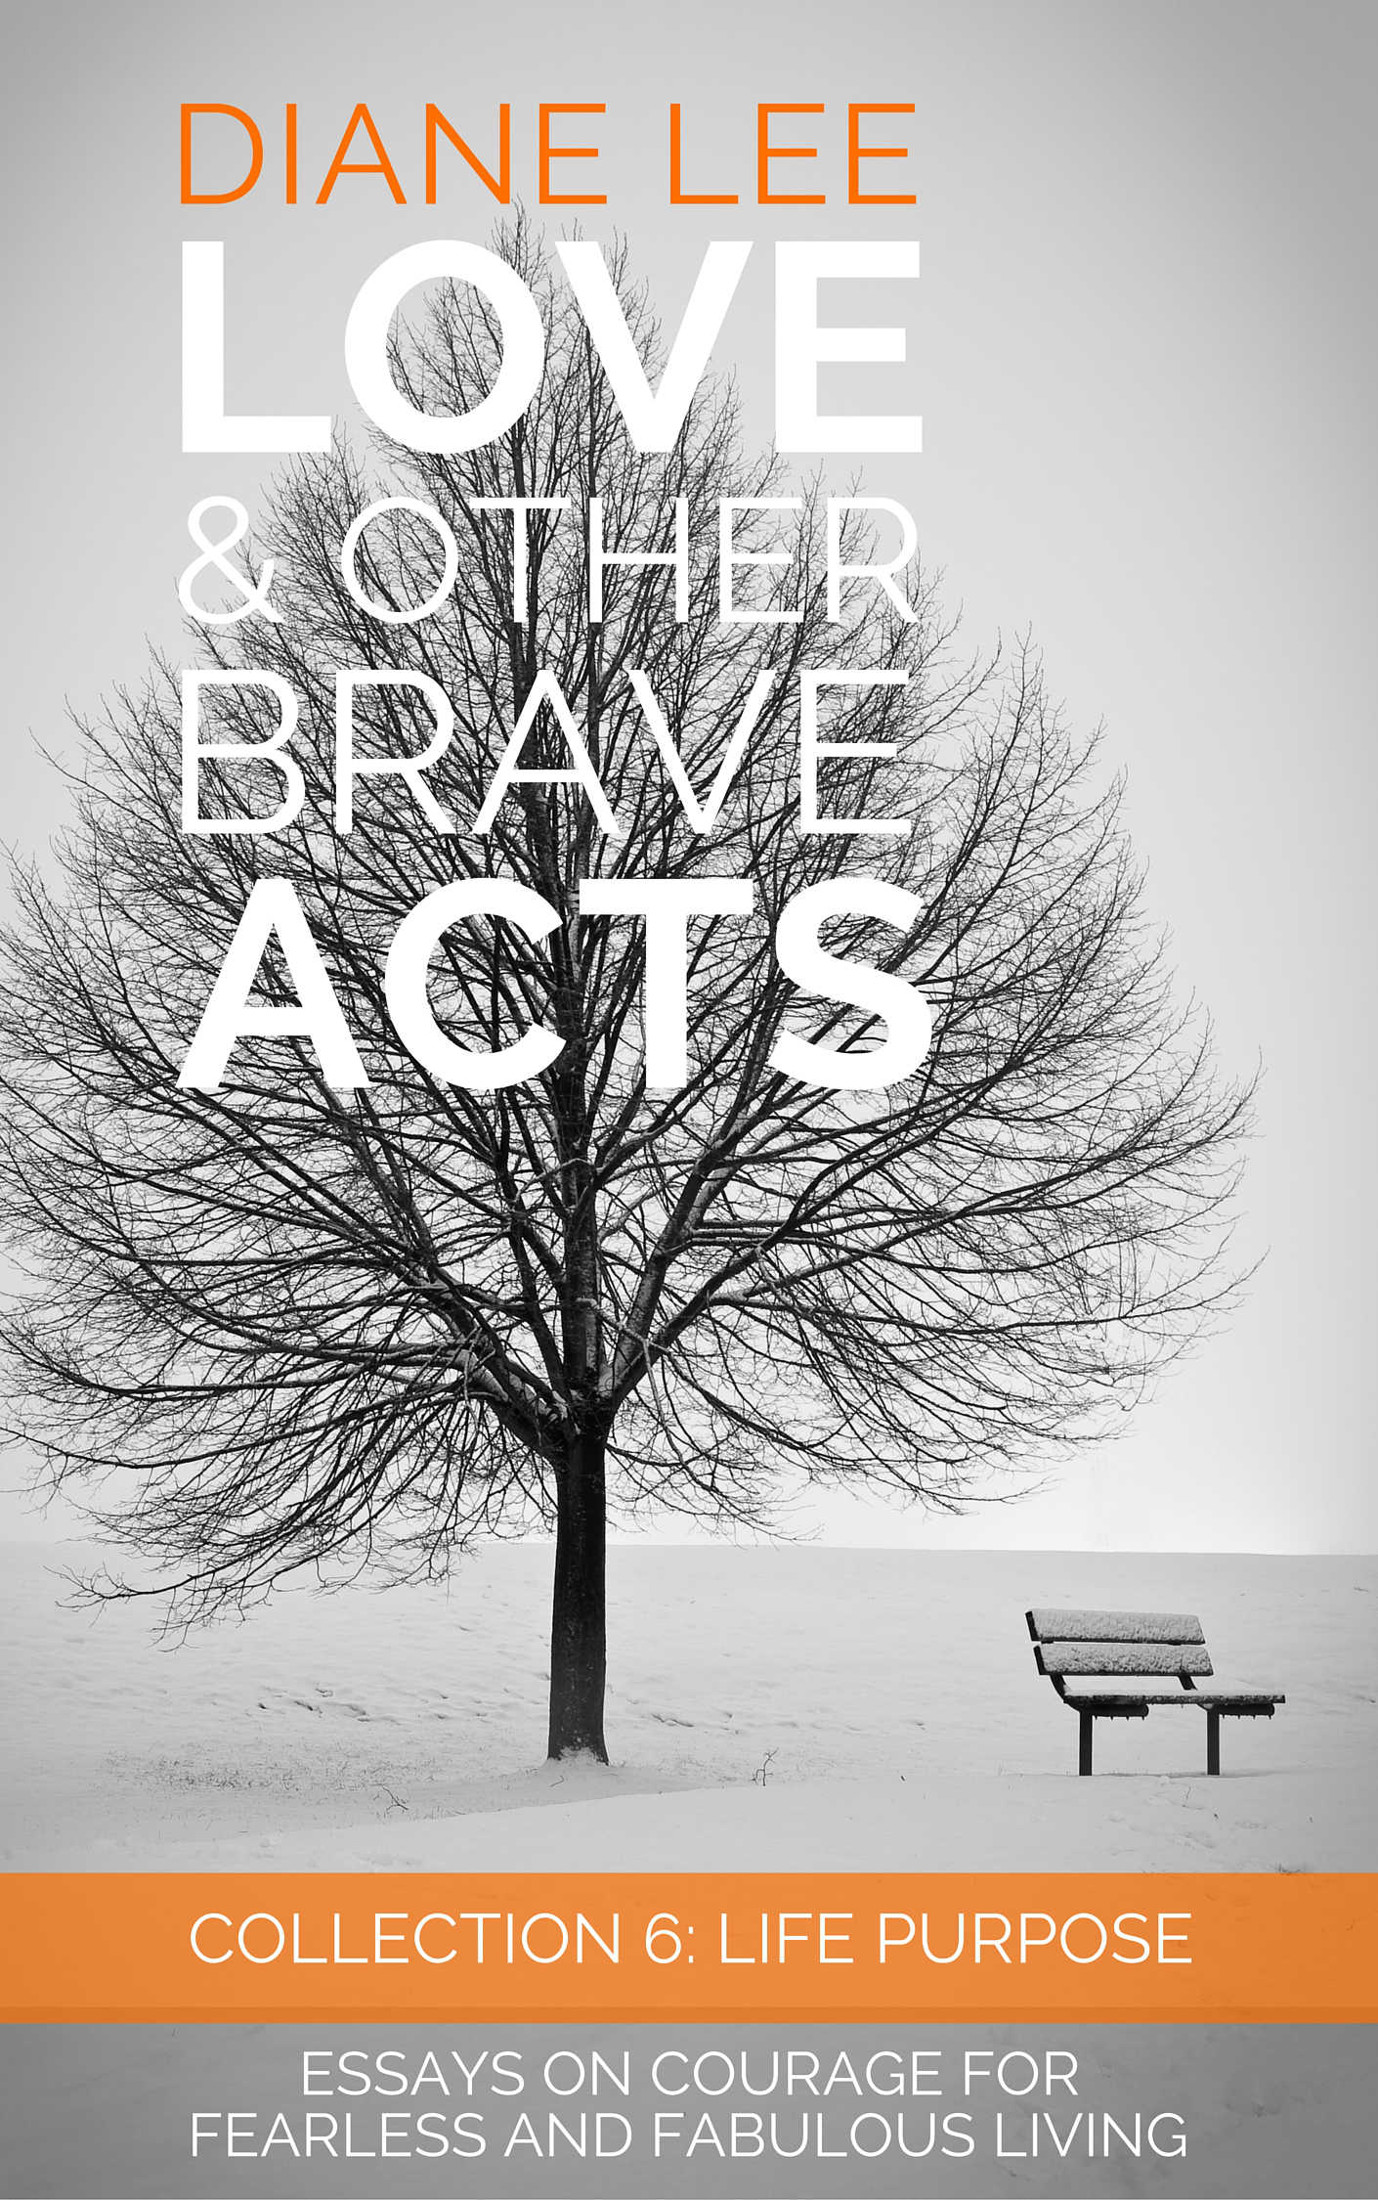 an act of bravery essay